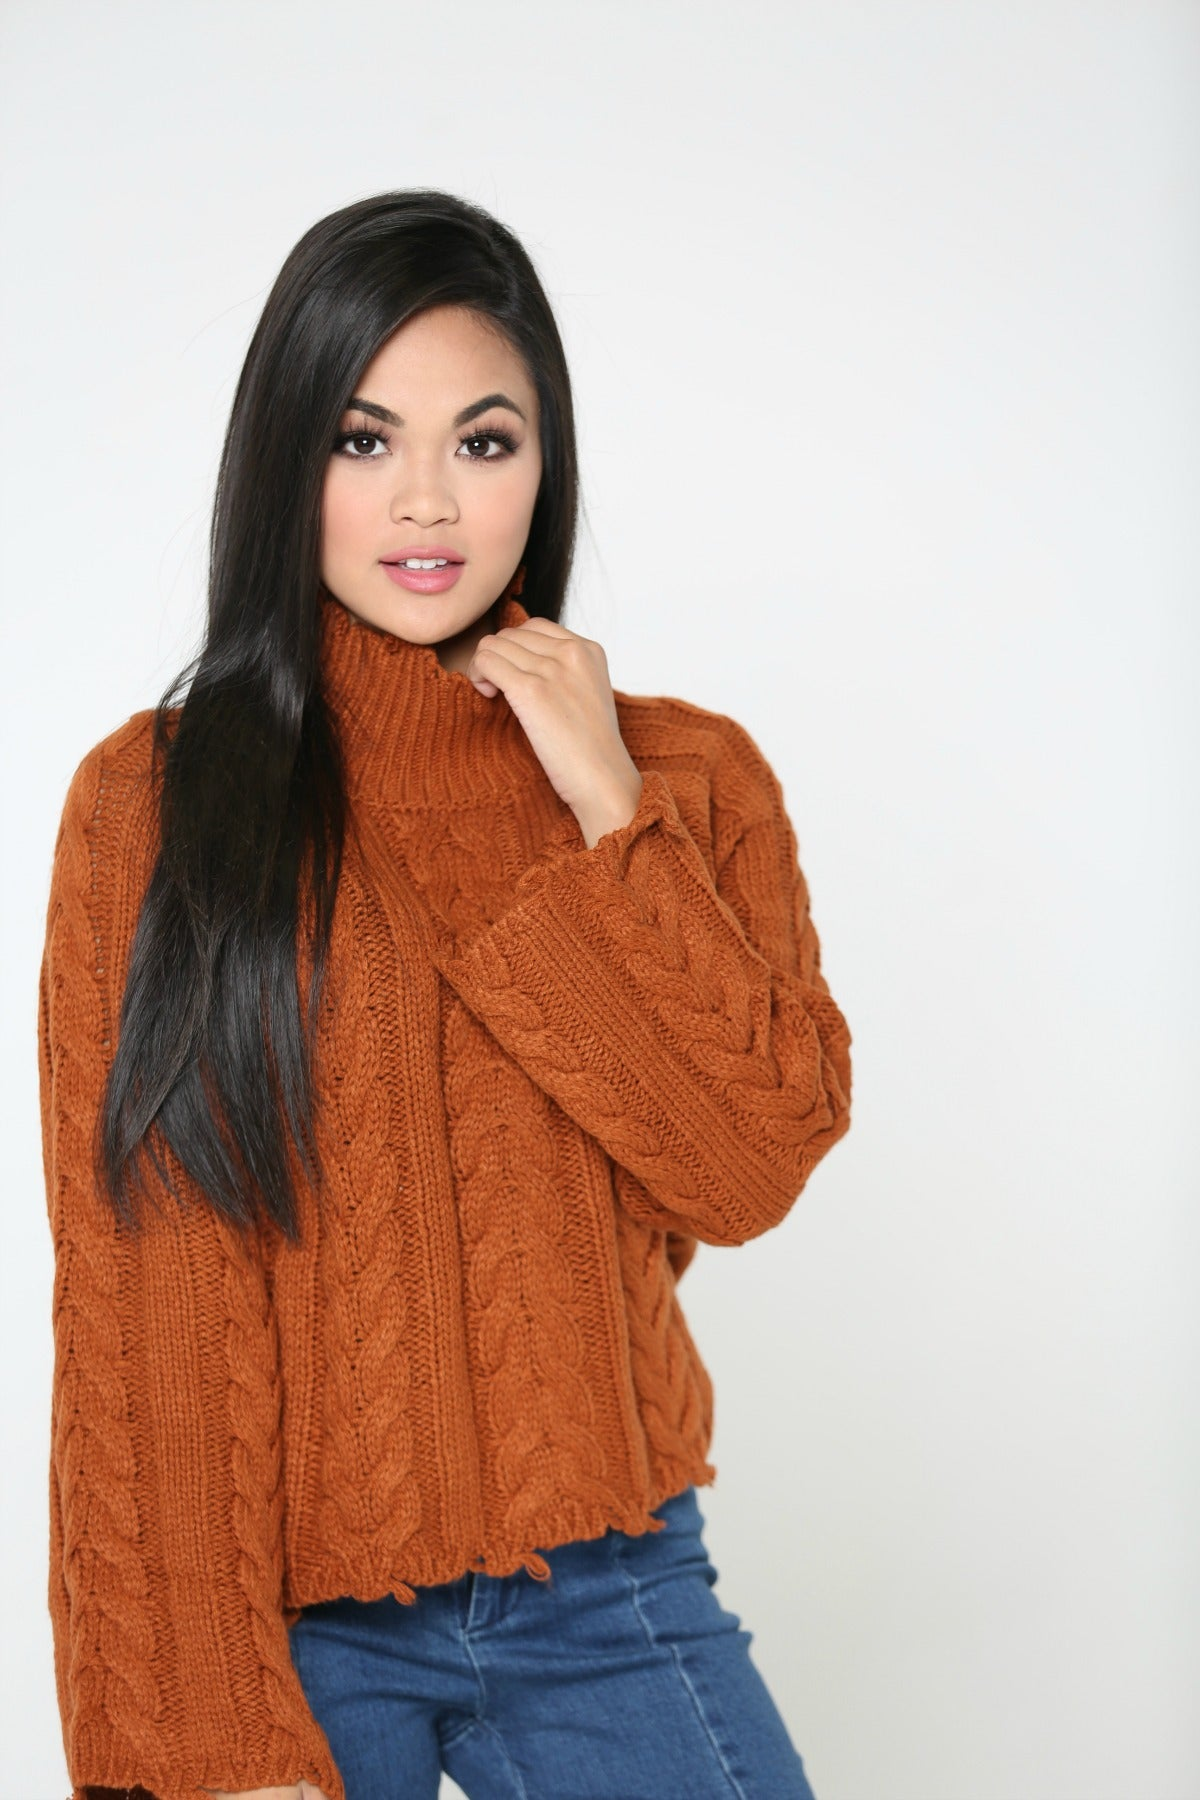 Cool Fall Nights Turtleneck Cropped Knit Sweater - The Flawless Babe Boutique